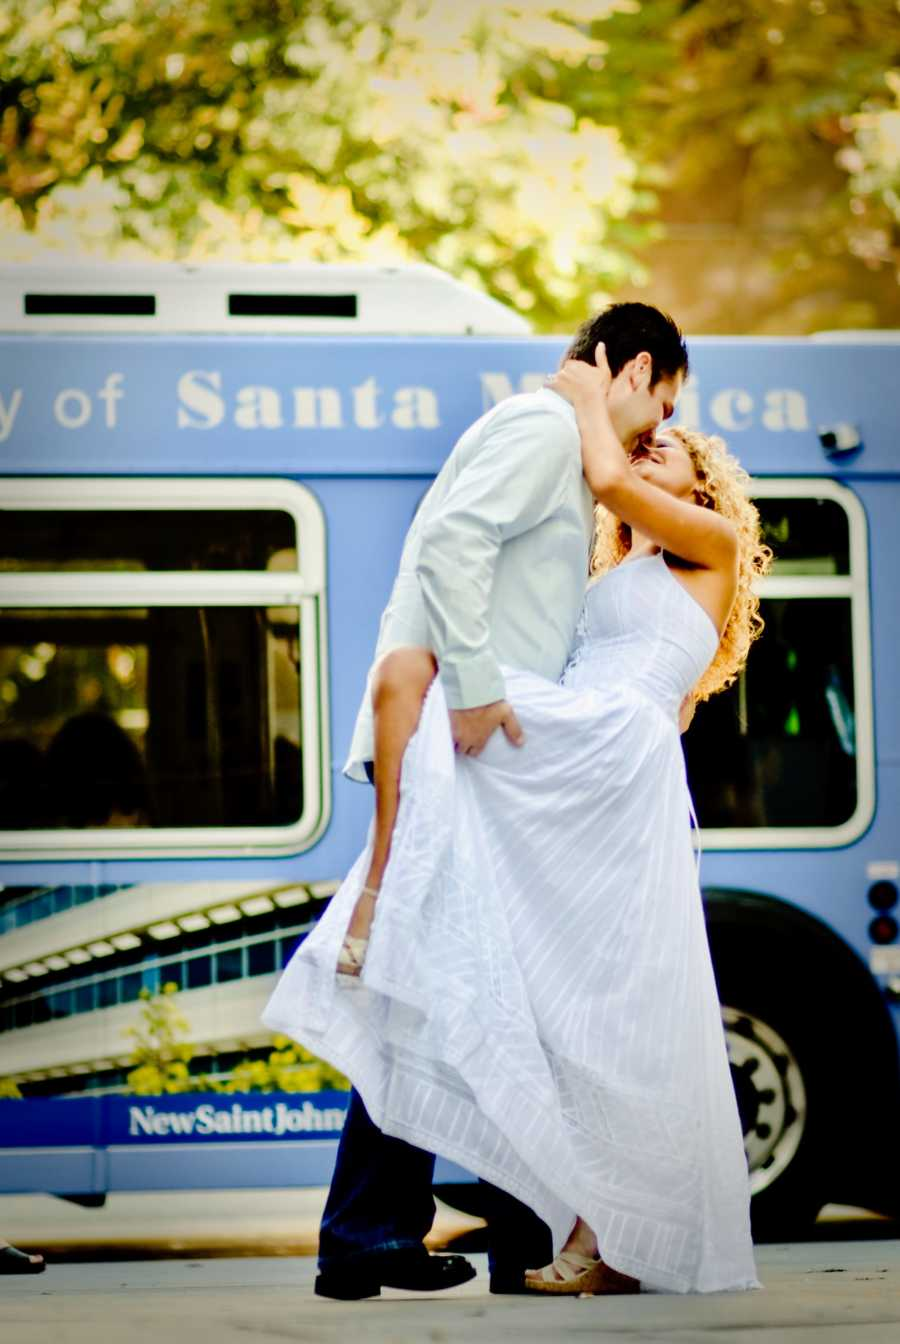 Young couple celebrate their love in intimate kiss during a photoshoot with a Santa Monica bus behind them